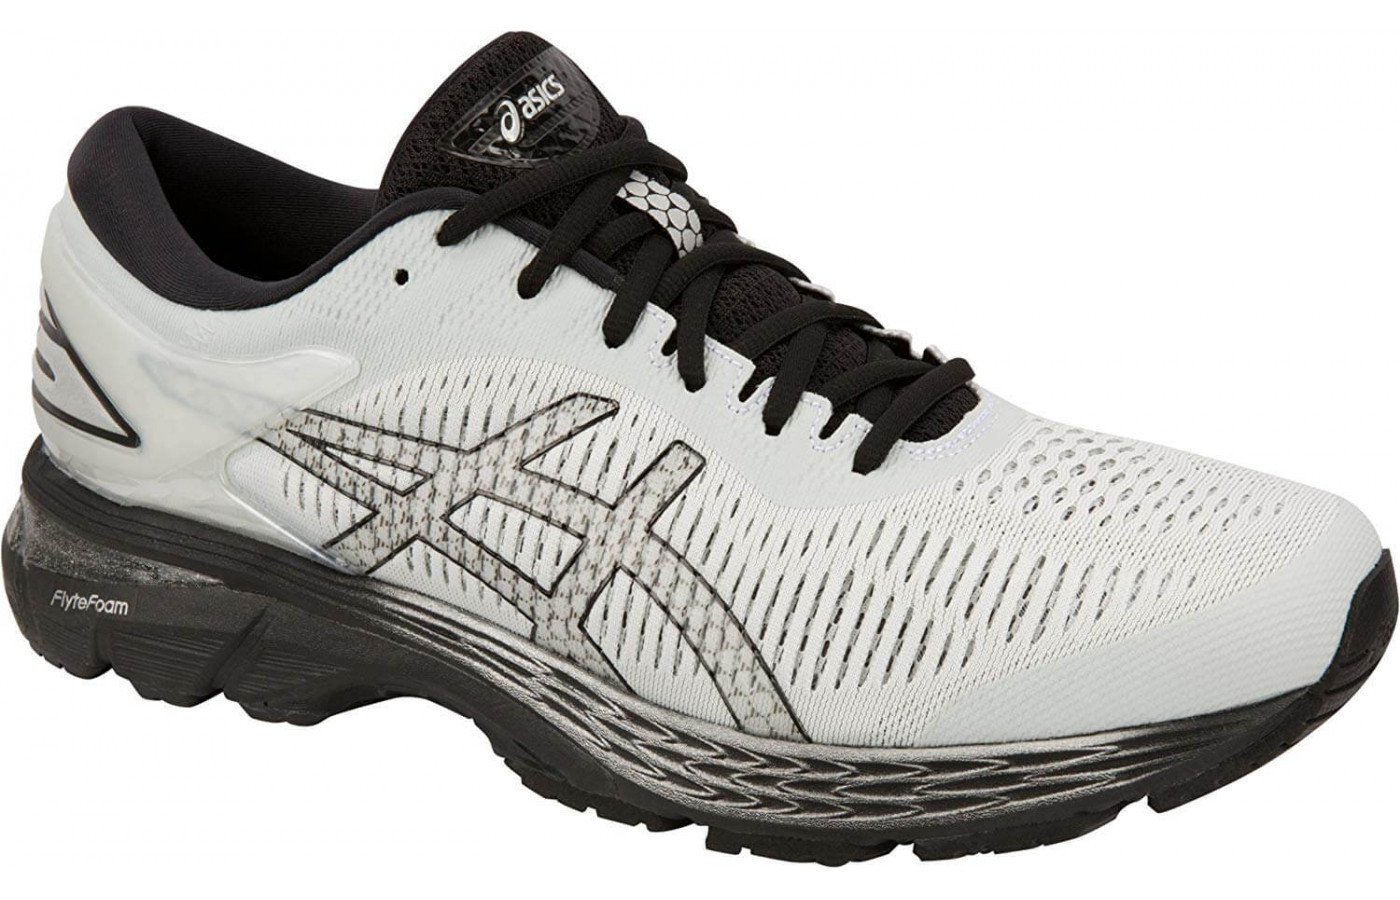 check out cd079 a8874 Asics Gel Kayano 25